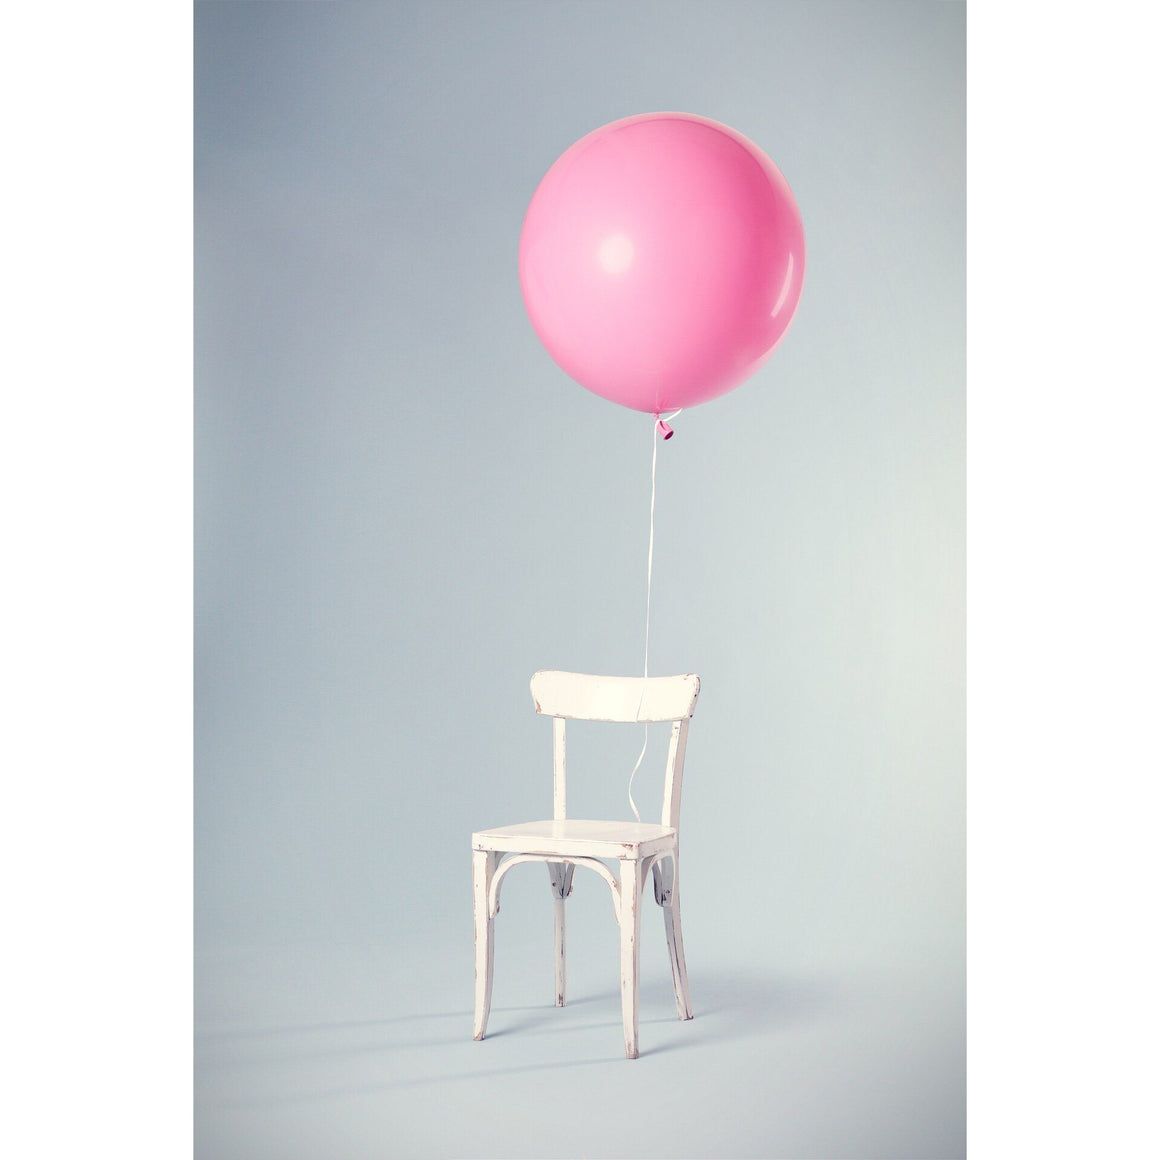 "BALLOON BAR - ROUND 36"" LIGHT PINK, Balloons, QUALATEX - Bon + Co. Party Studio"